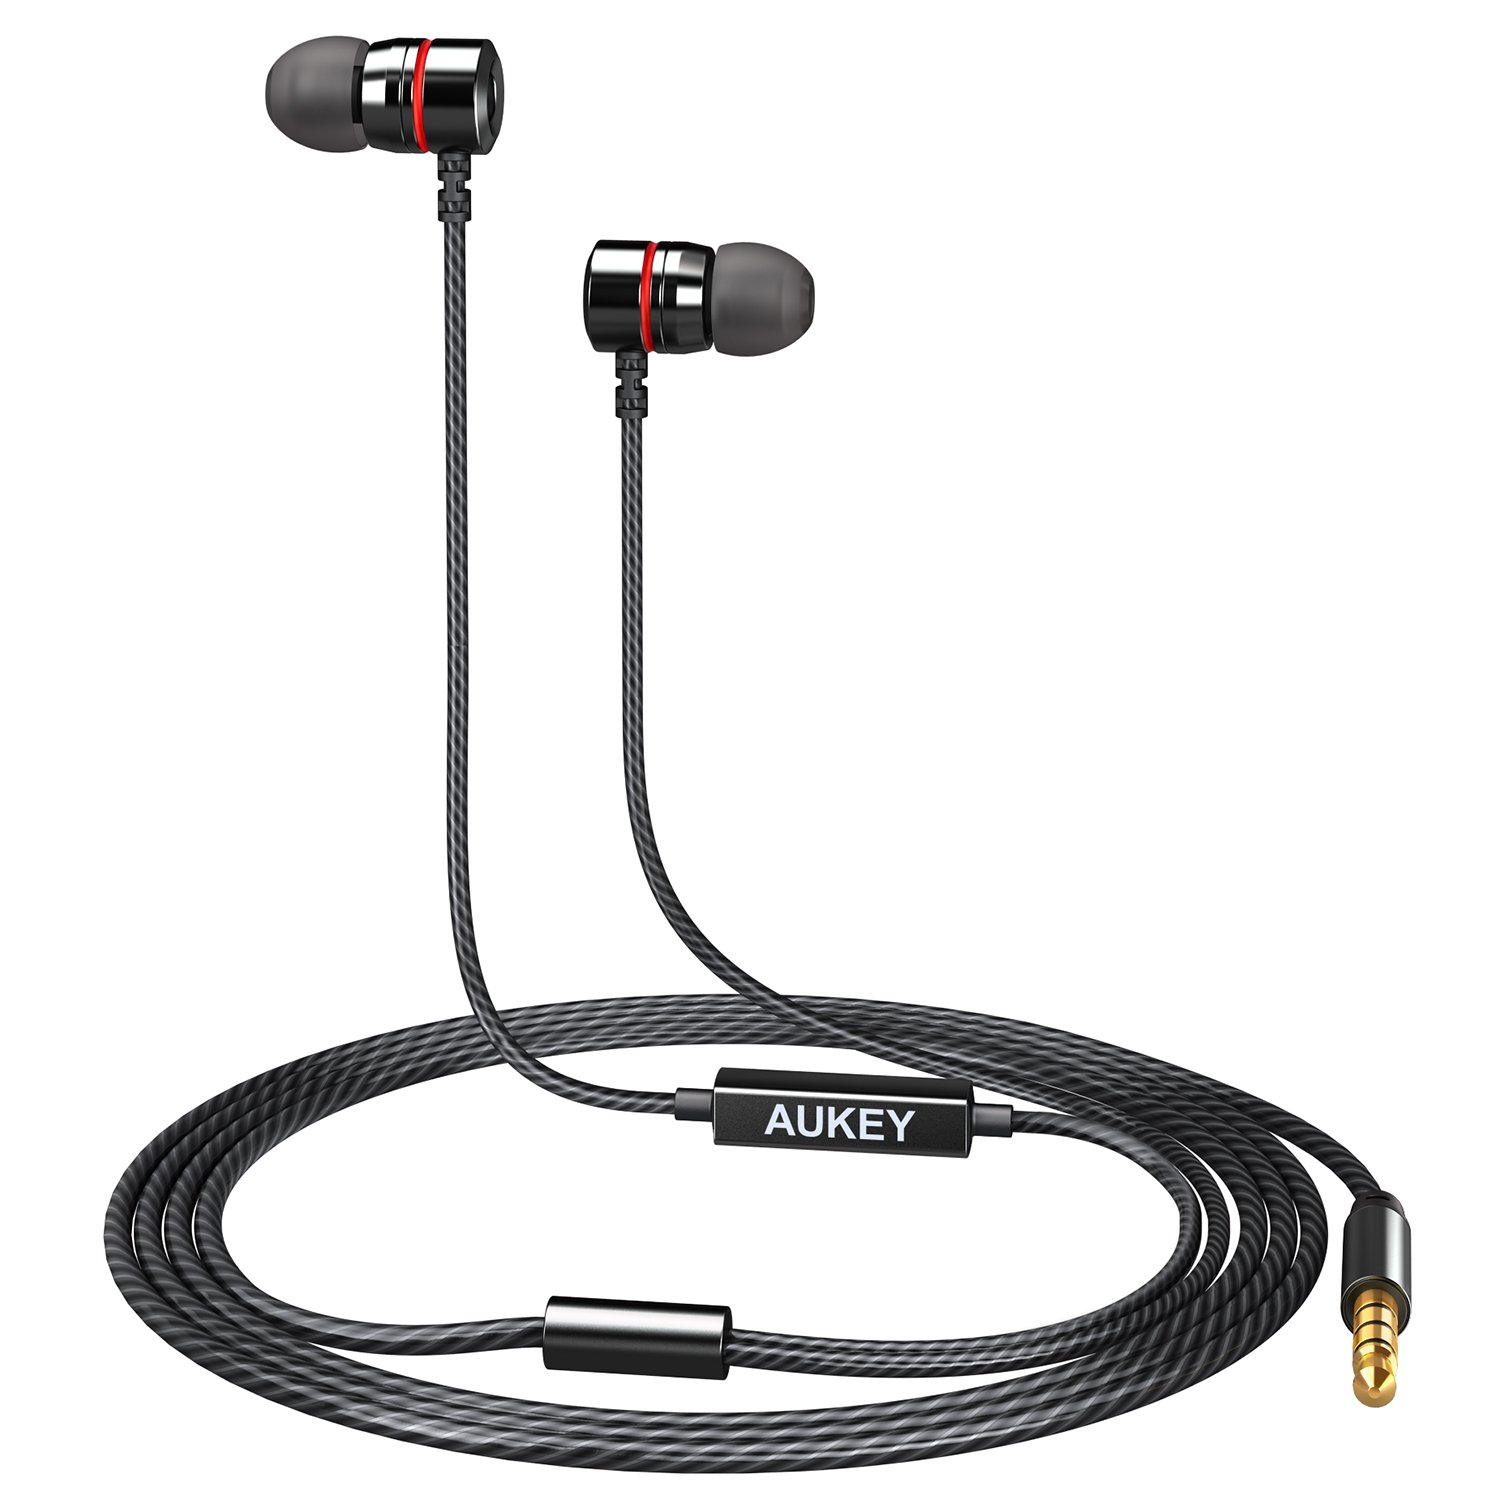 AUKEY Earbuds, In-Ear Wired Headphones with Metal Housing and Built-In Microphone for Smartphones, Laptops, and More